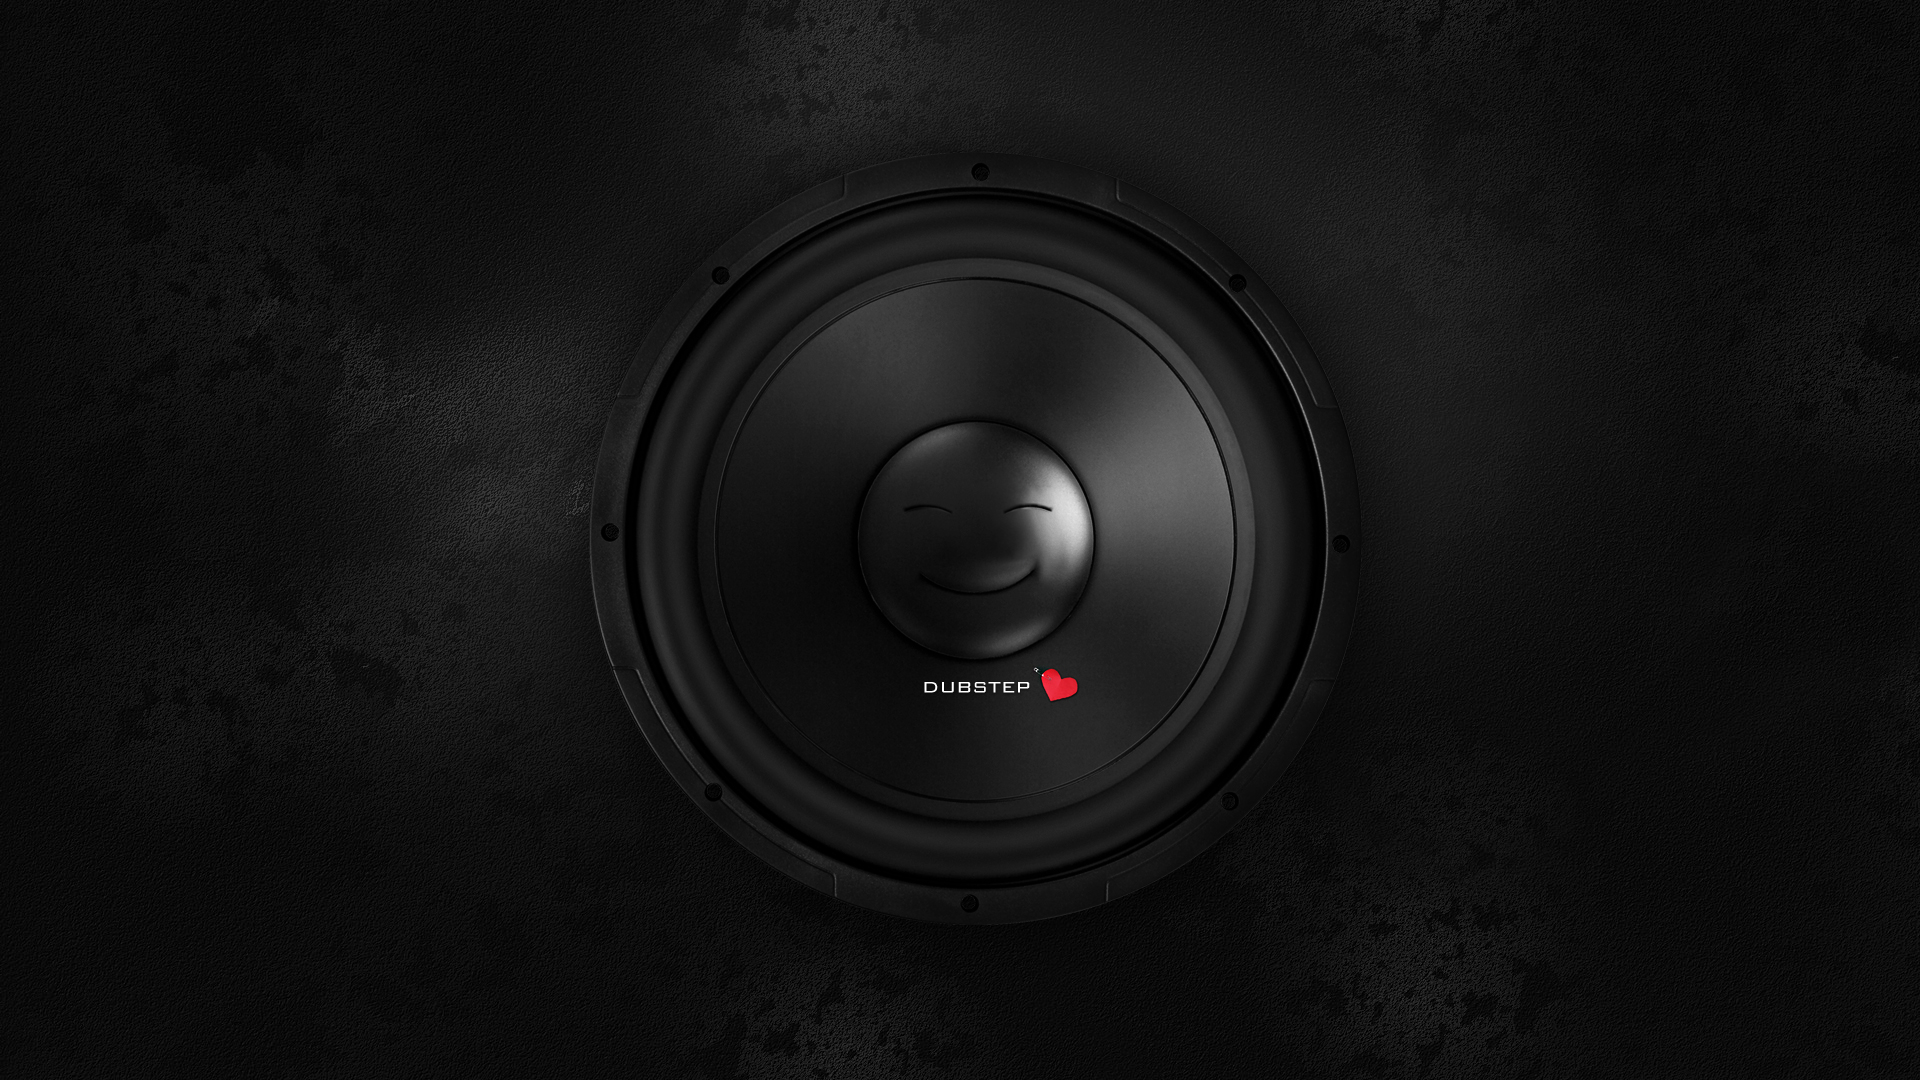 dj sound box hd wallpaper